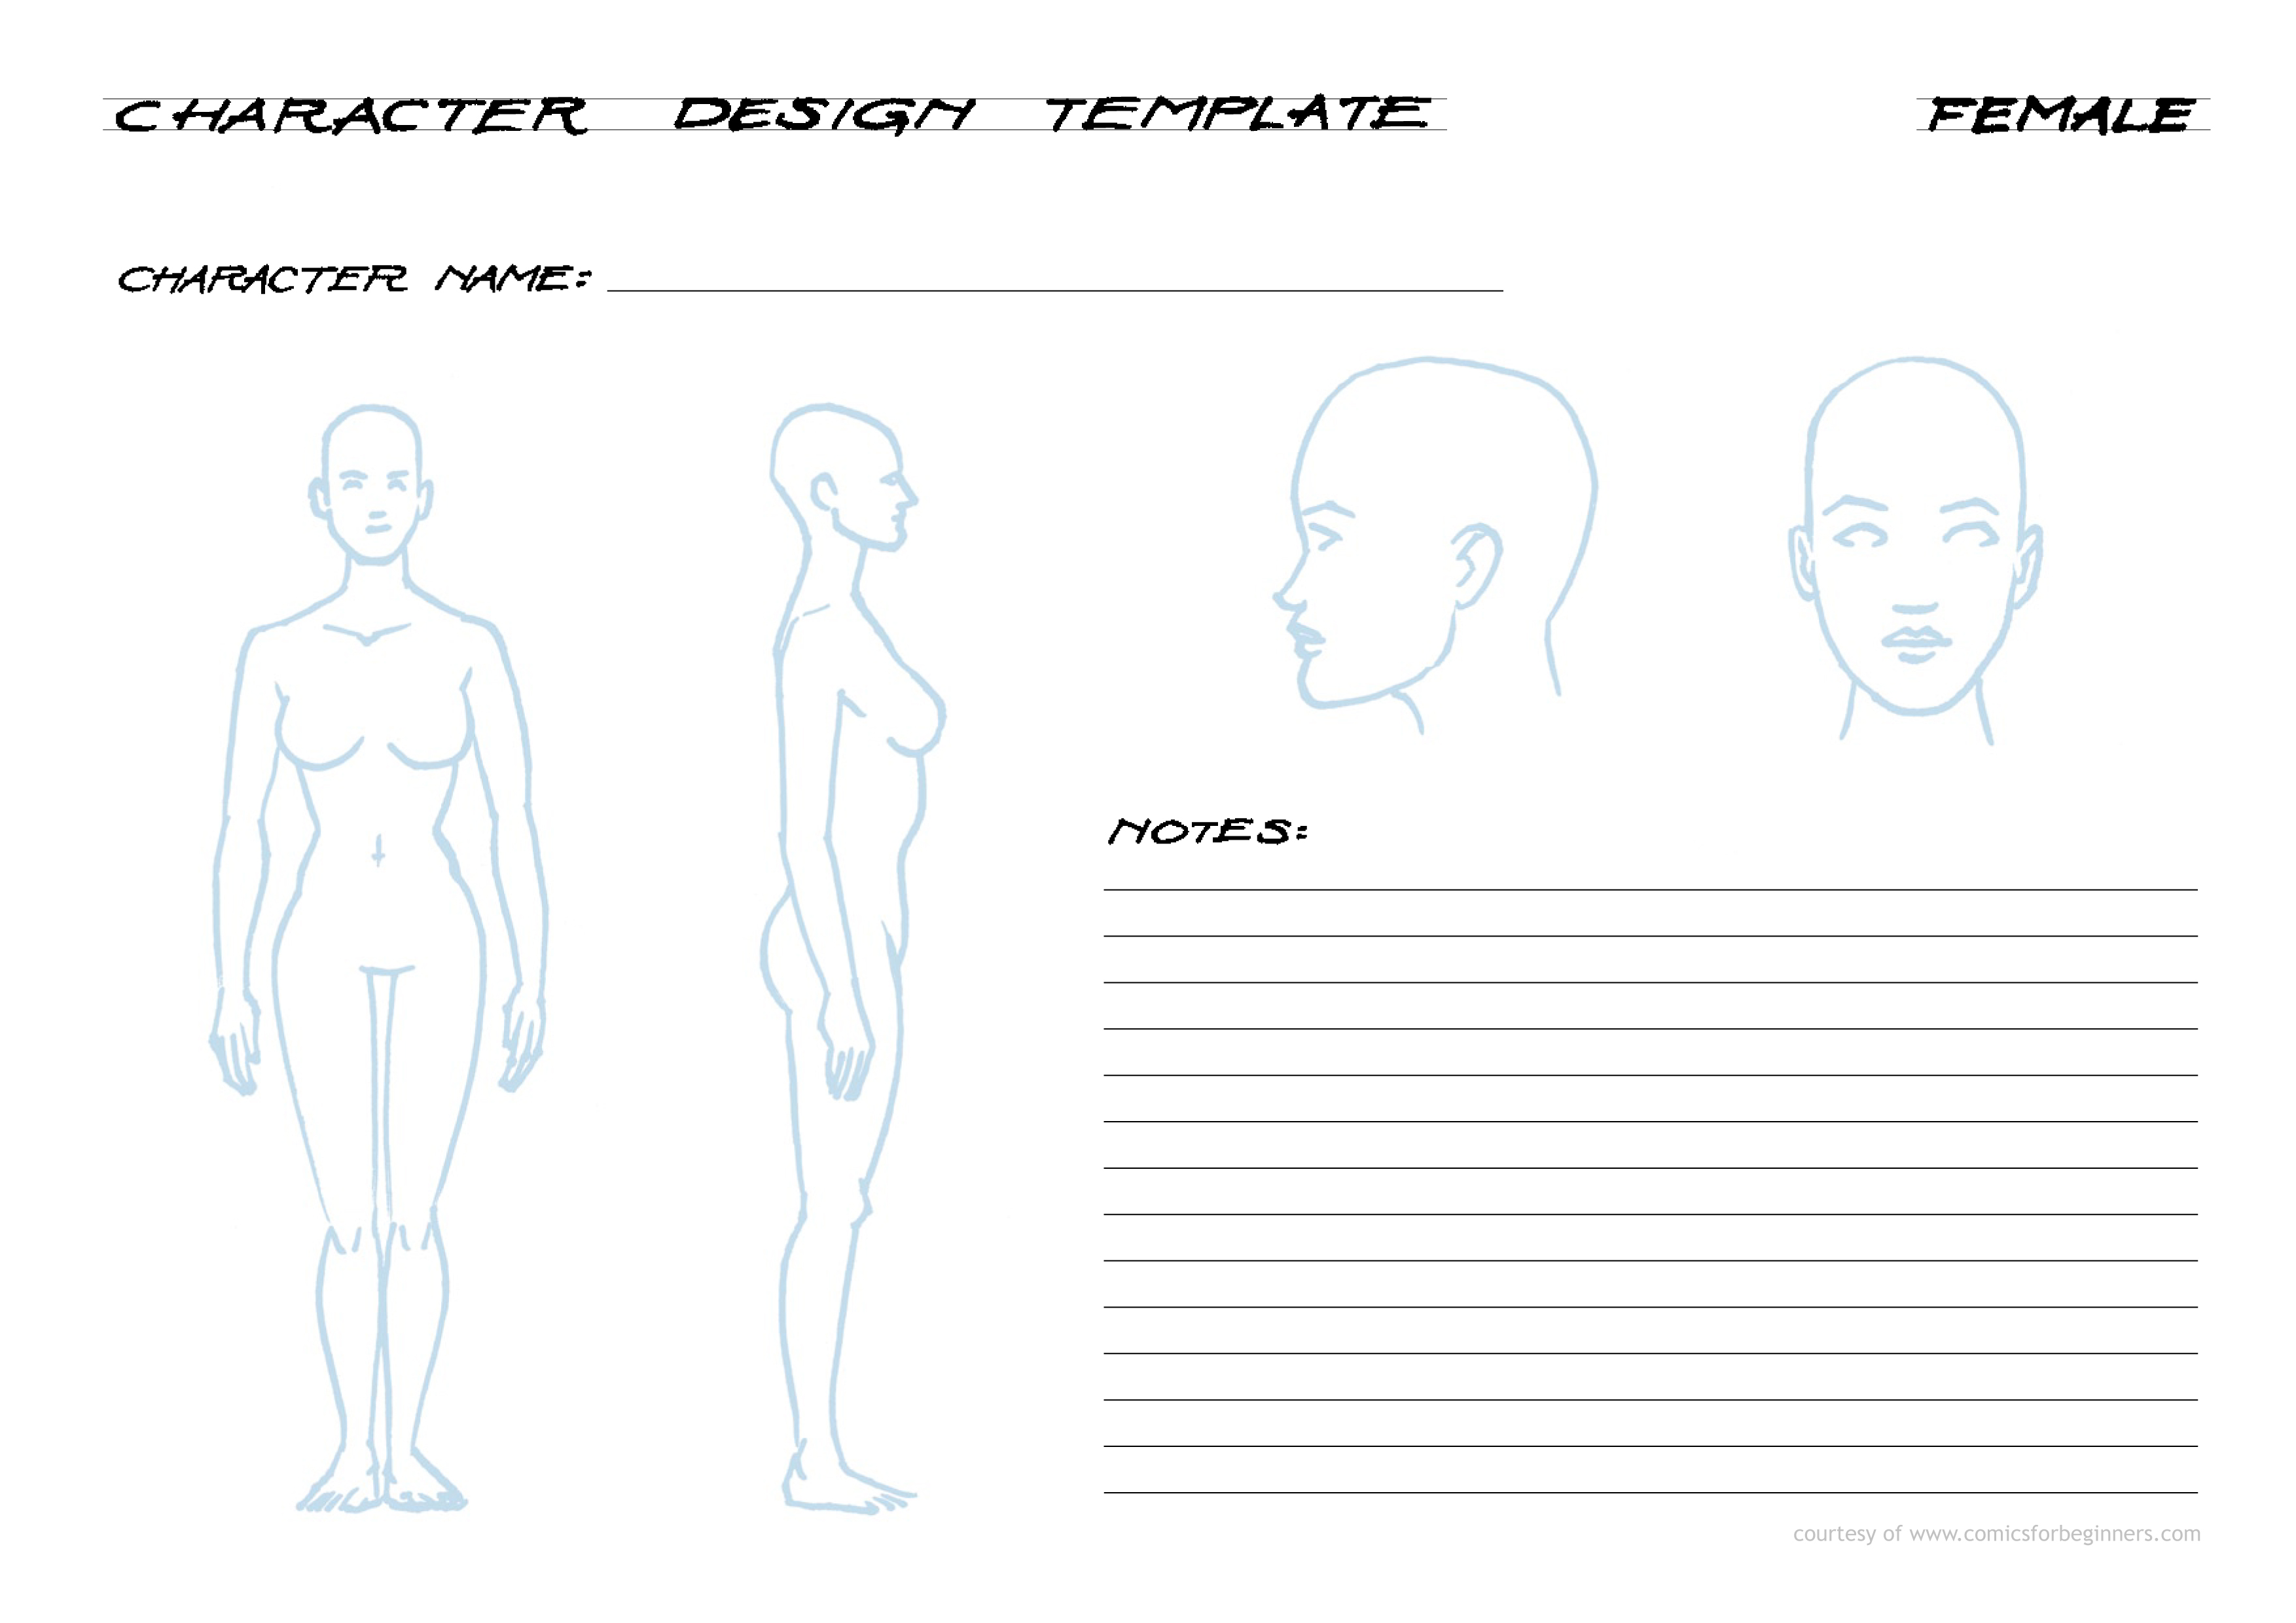 Free Tools For Comic Book Artists - Comics for Beginners